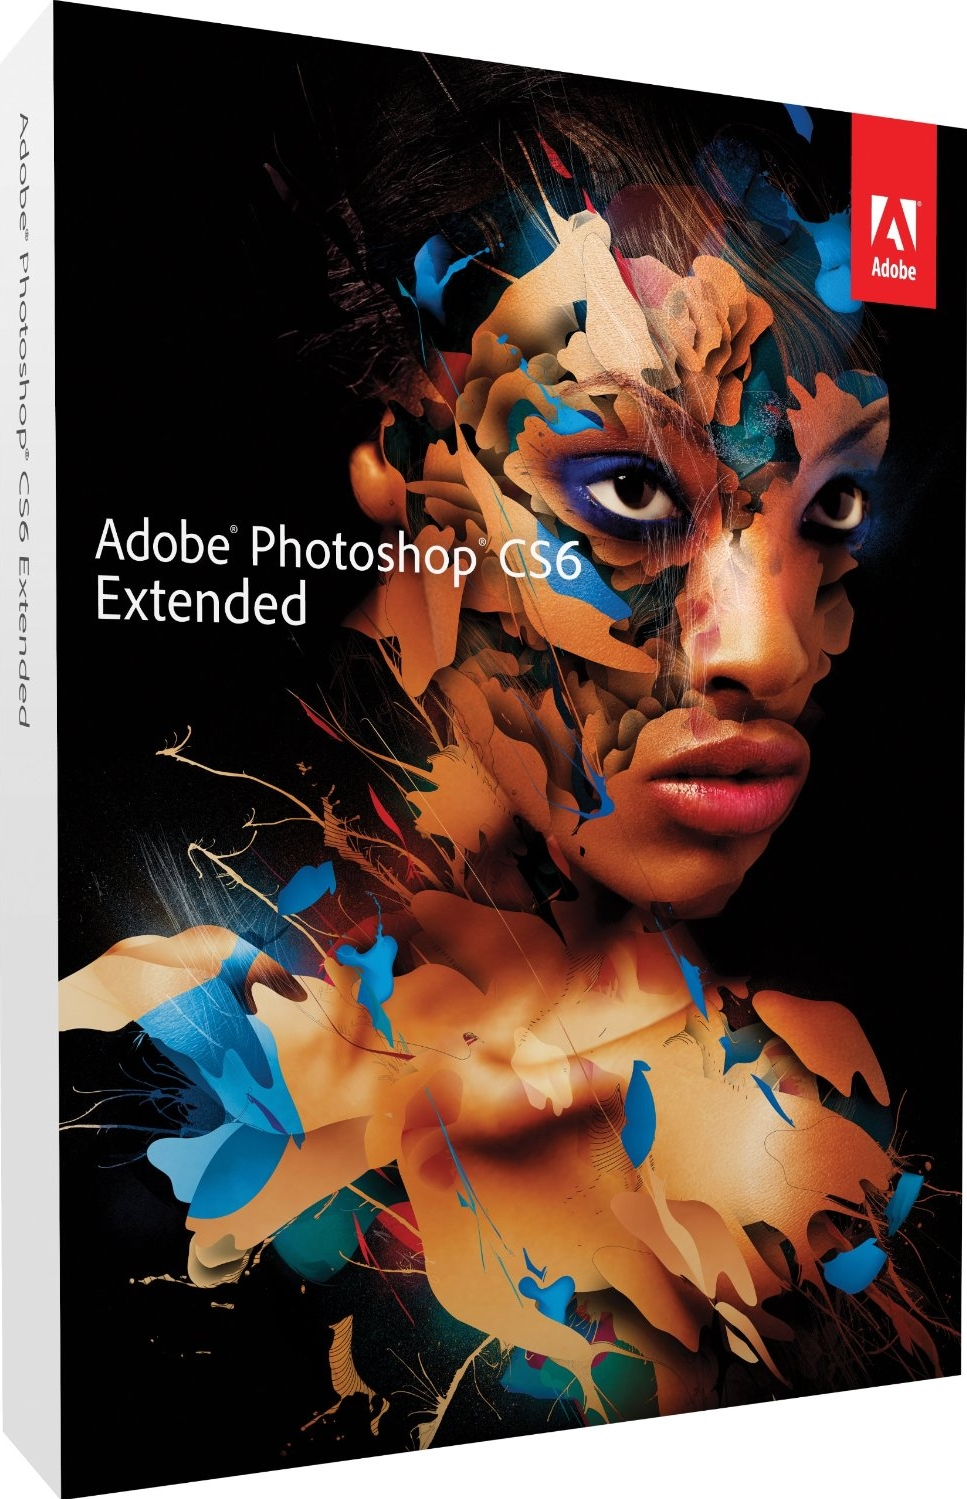 Download ADOBE PHOTOSHOP CS6 EXTENDED EDITION [thethingy]